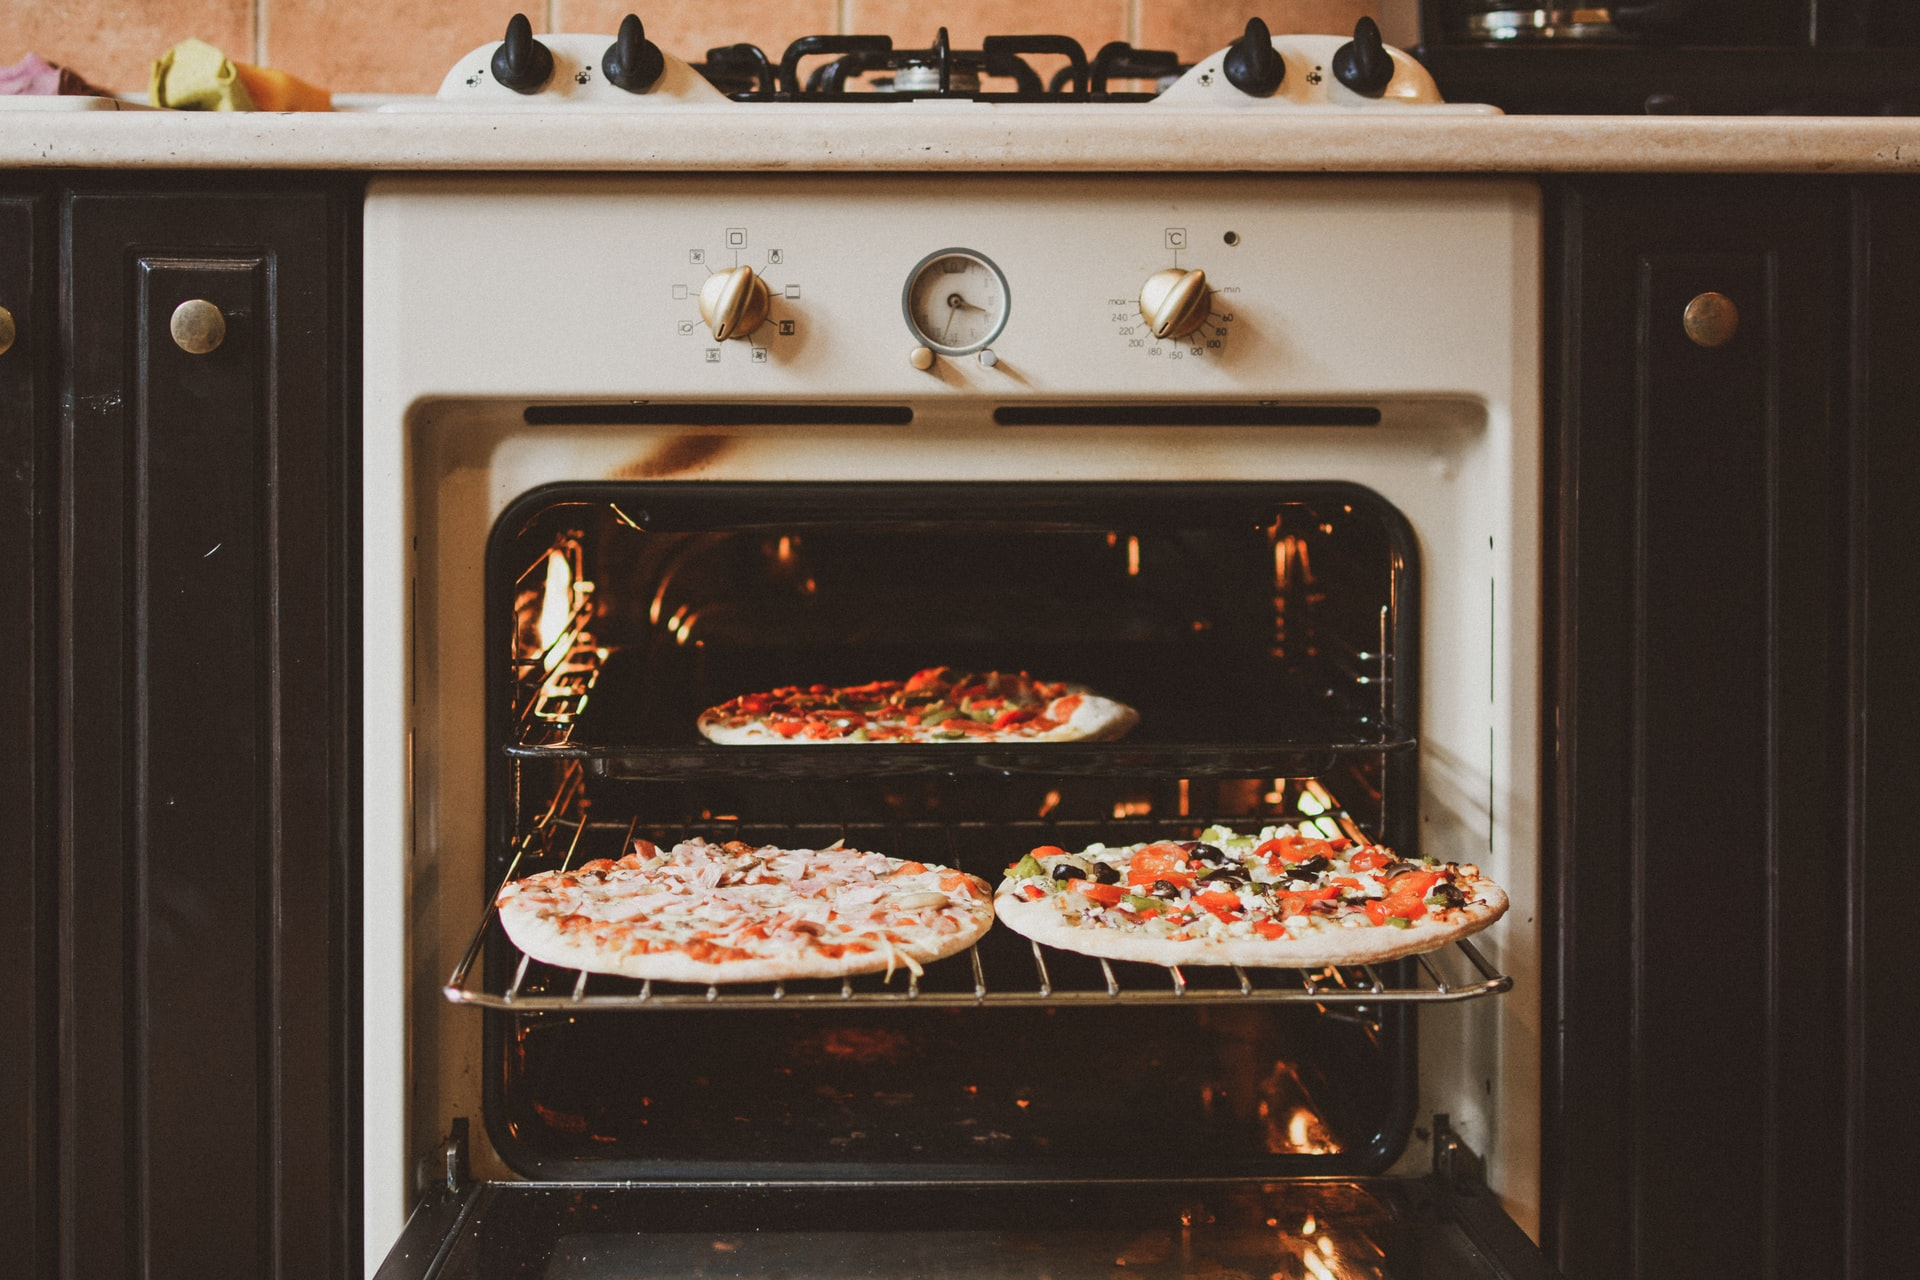 What You Need to Know Before Replacing Your Oven